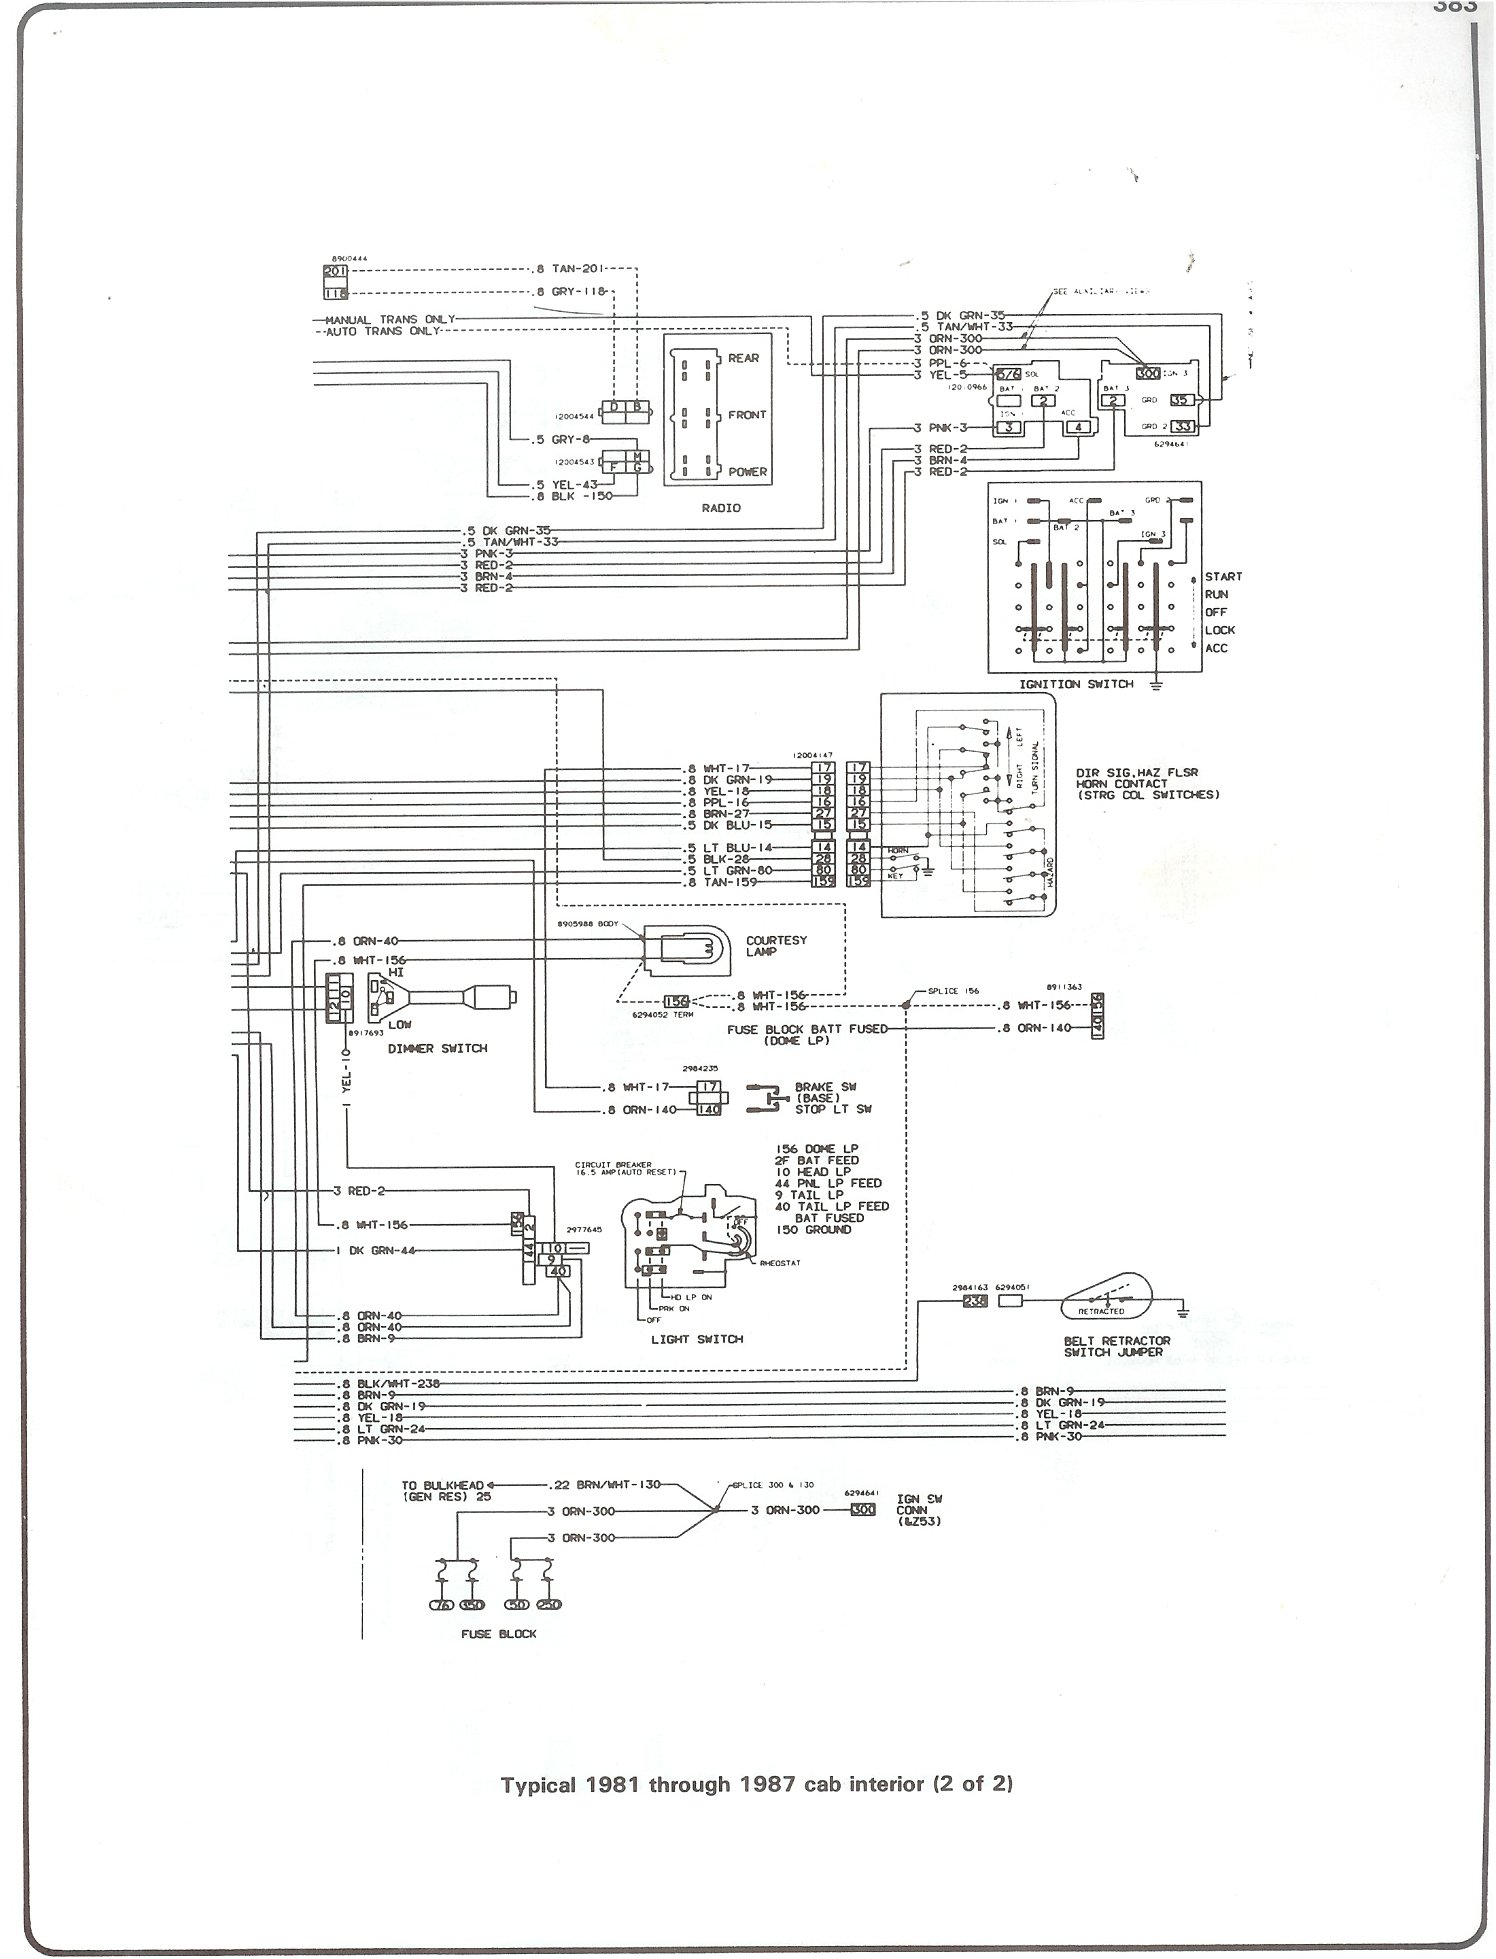 81 87_cab_inter_pg2 complete 73 87 wiring diagrams chevy truck wiring diagram at fashall.co